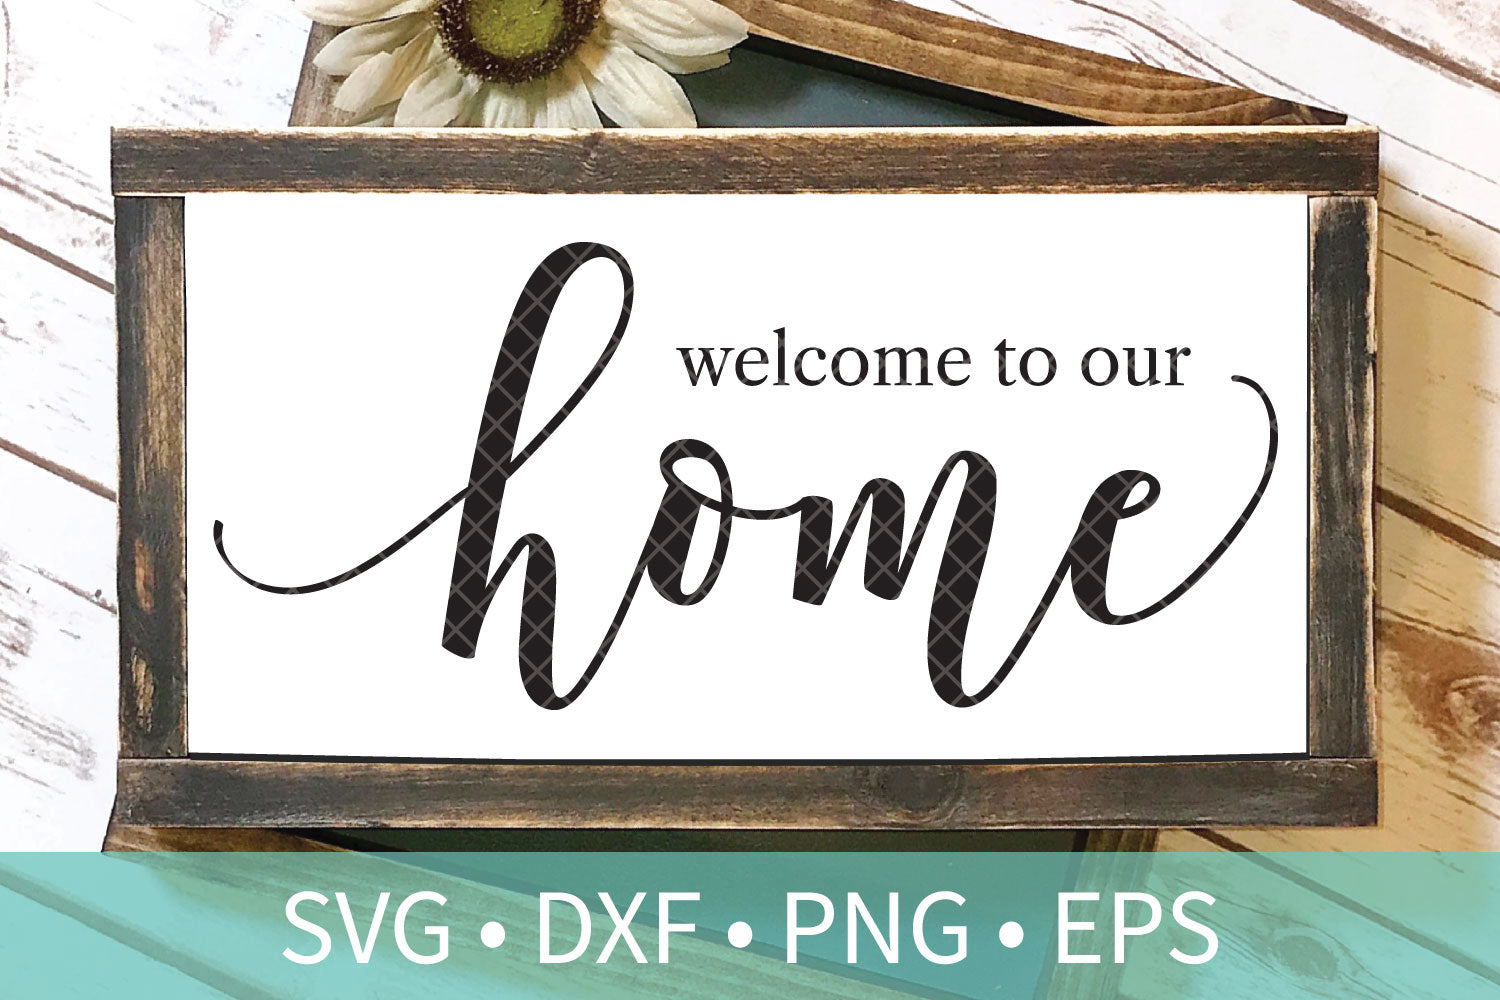 Welcome to our Home Farmhouse SVG File